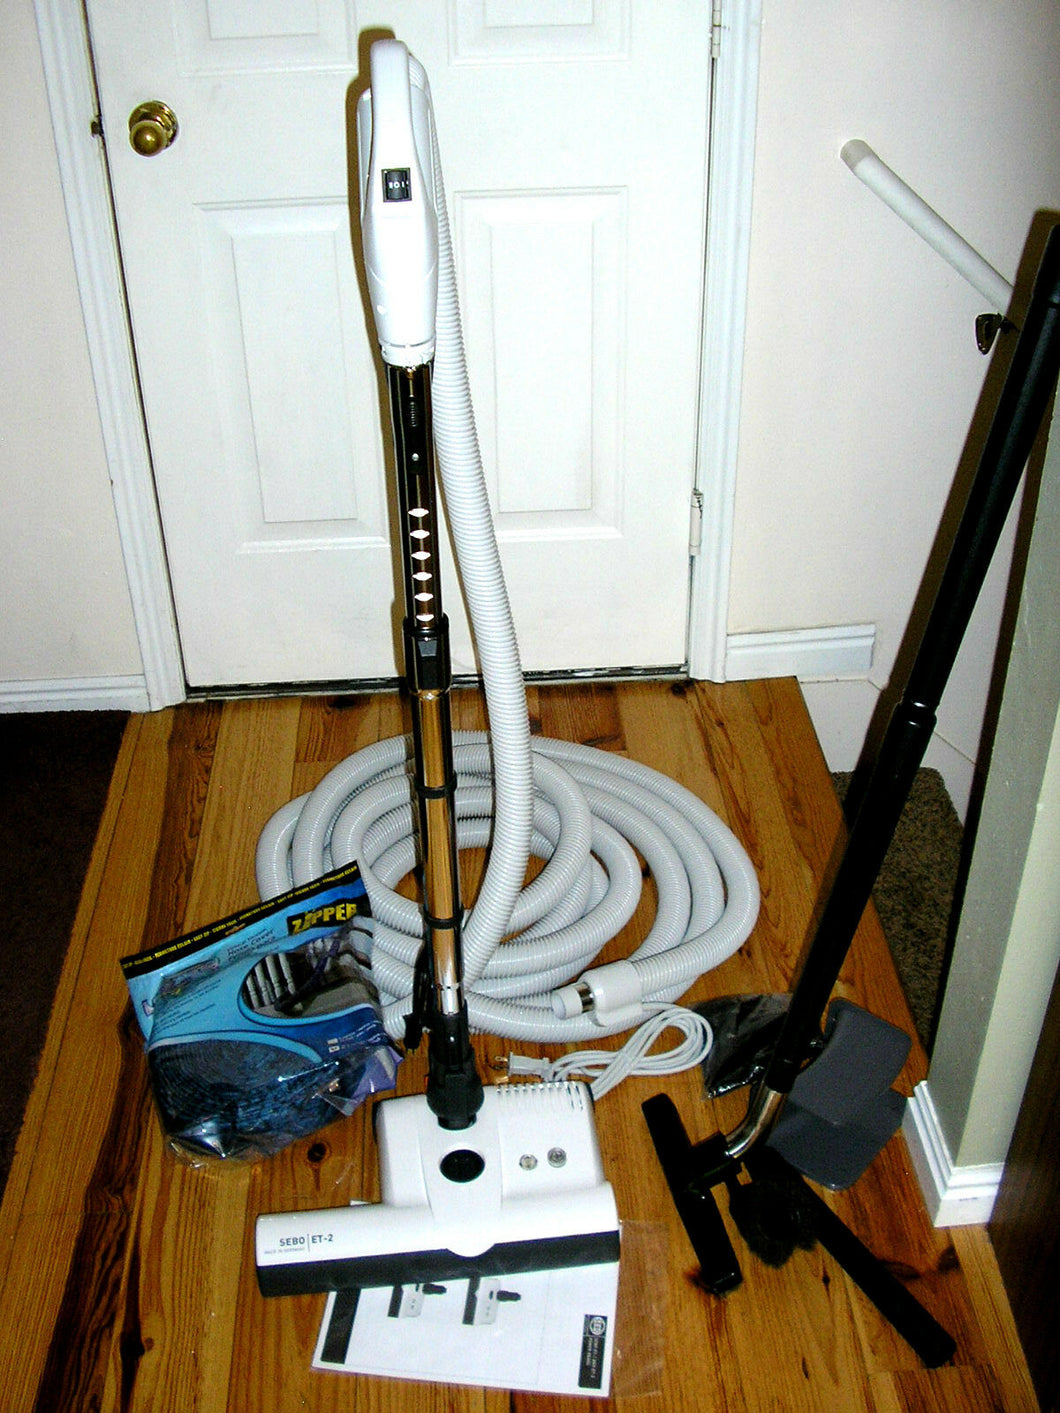 Central Vacuum 35 Foot Hose Accessory Kit Featuring Sebo ET-2 Carpet Power Head